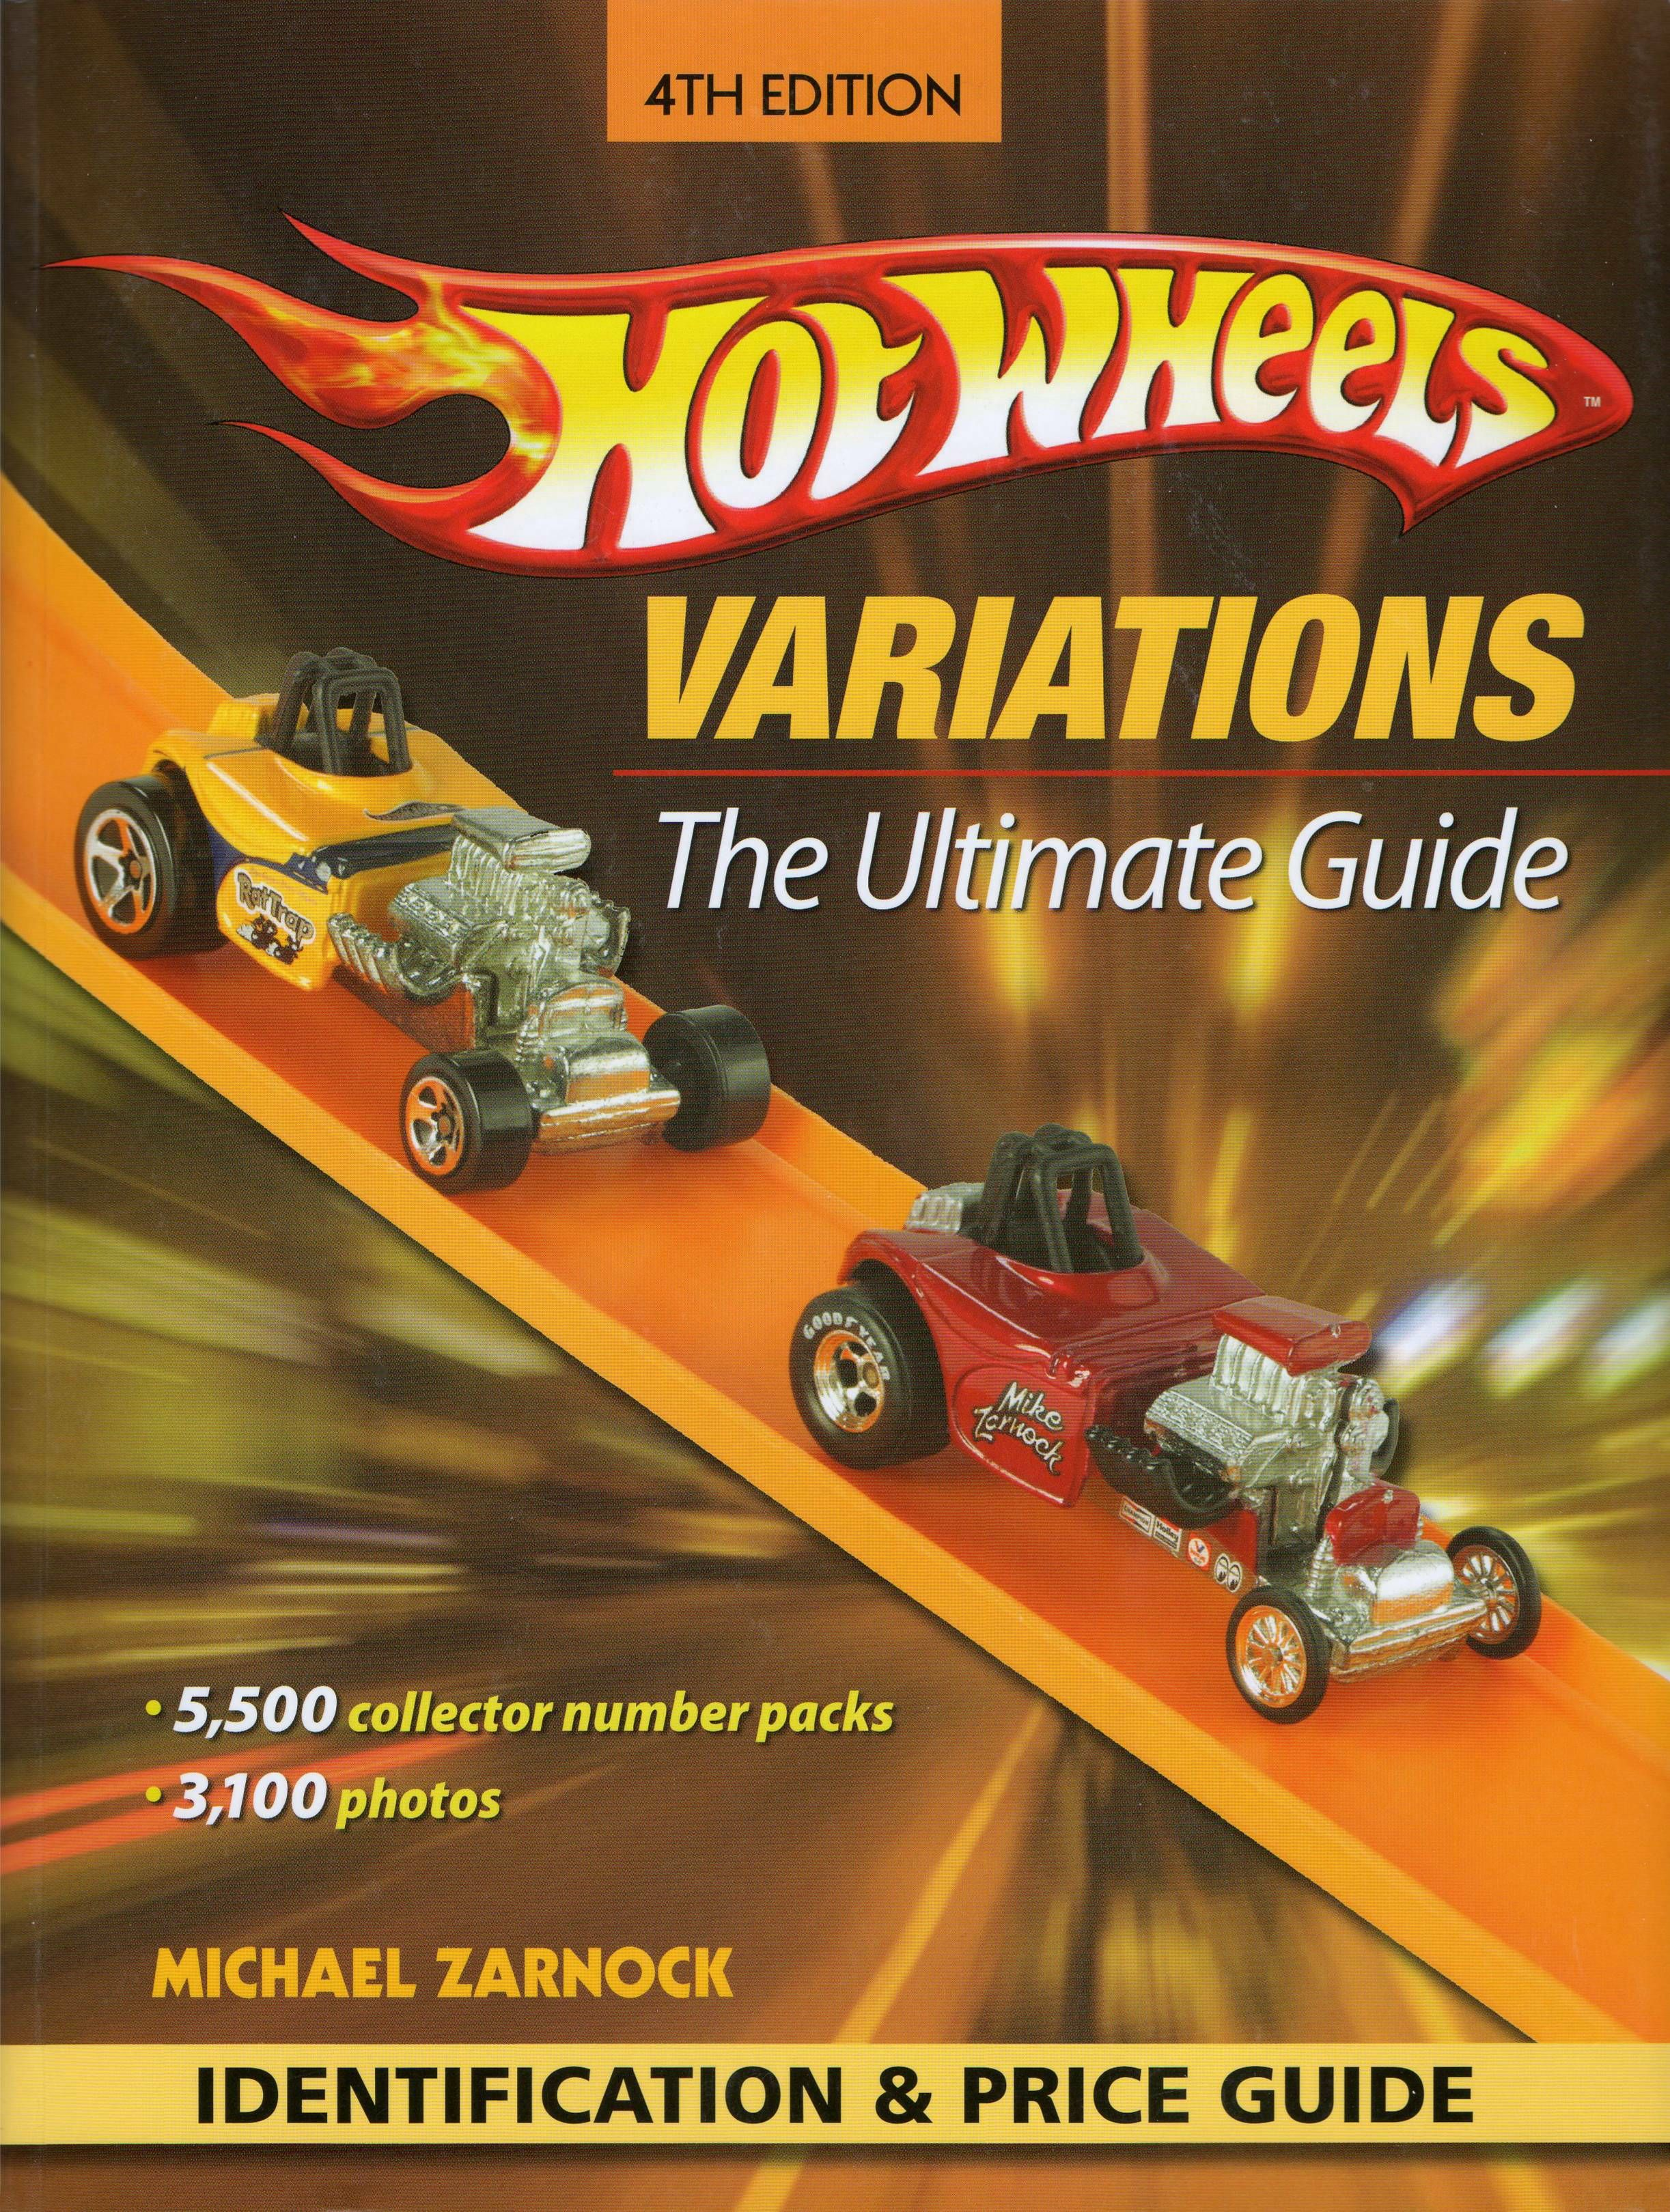 Hot Wheels Variations The Ultimate Guide 4th Edition by Michael Zarnock- Purchase your autographed copy at www.mikezarnock.c... #hotwheels #mattel #toys #hotrod